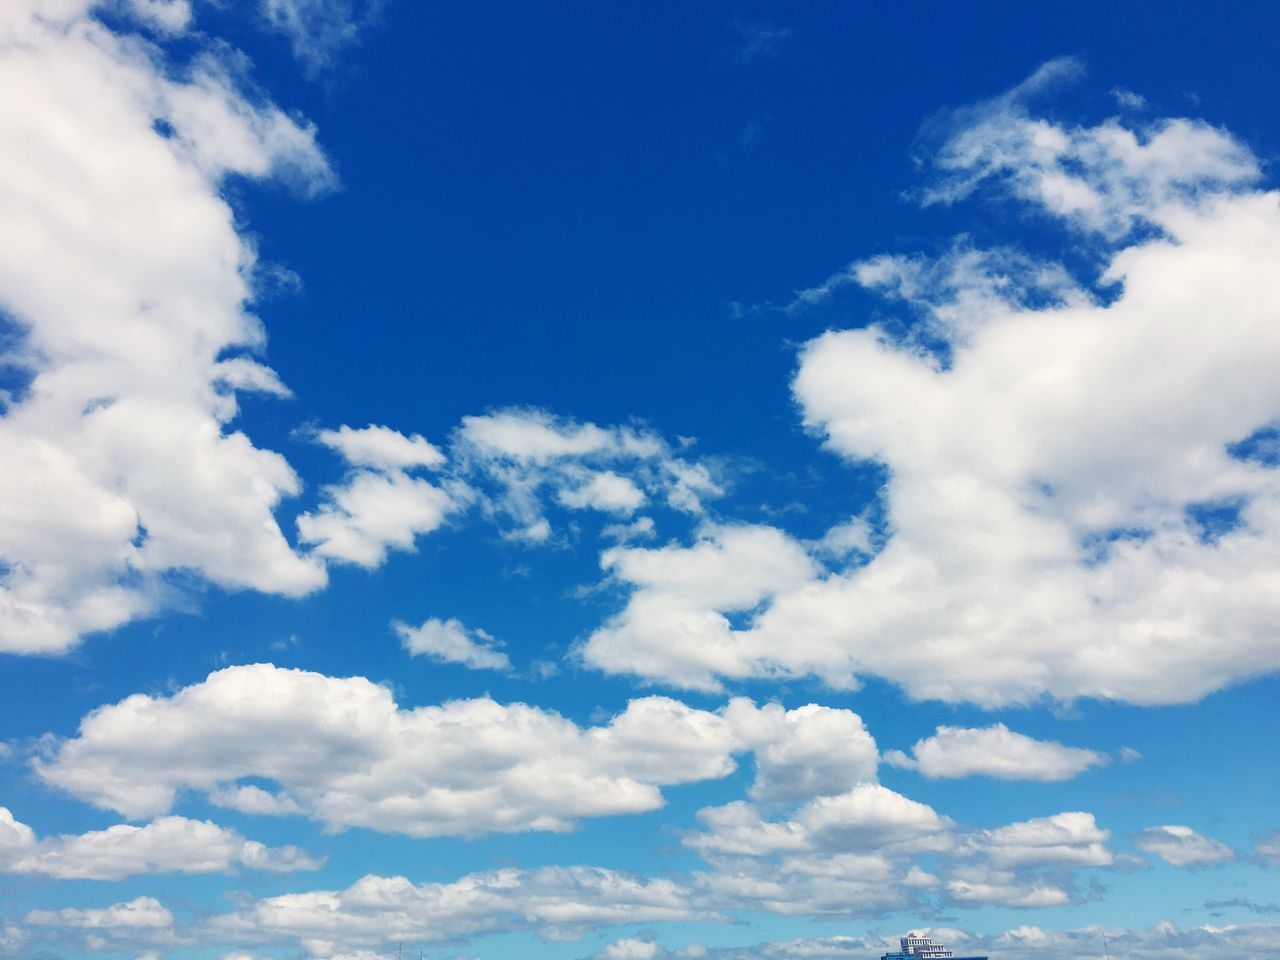 Sky Cloud - Sky Blue Nature Low Angle View Cumulus Cloud Cloudscape Fluffy Tranquility Backgrounds Beauty In Nature Day Scenics Sky Only No People Outdoors